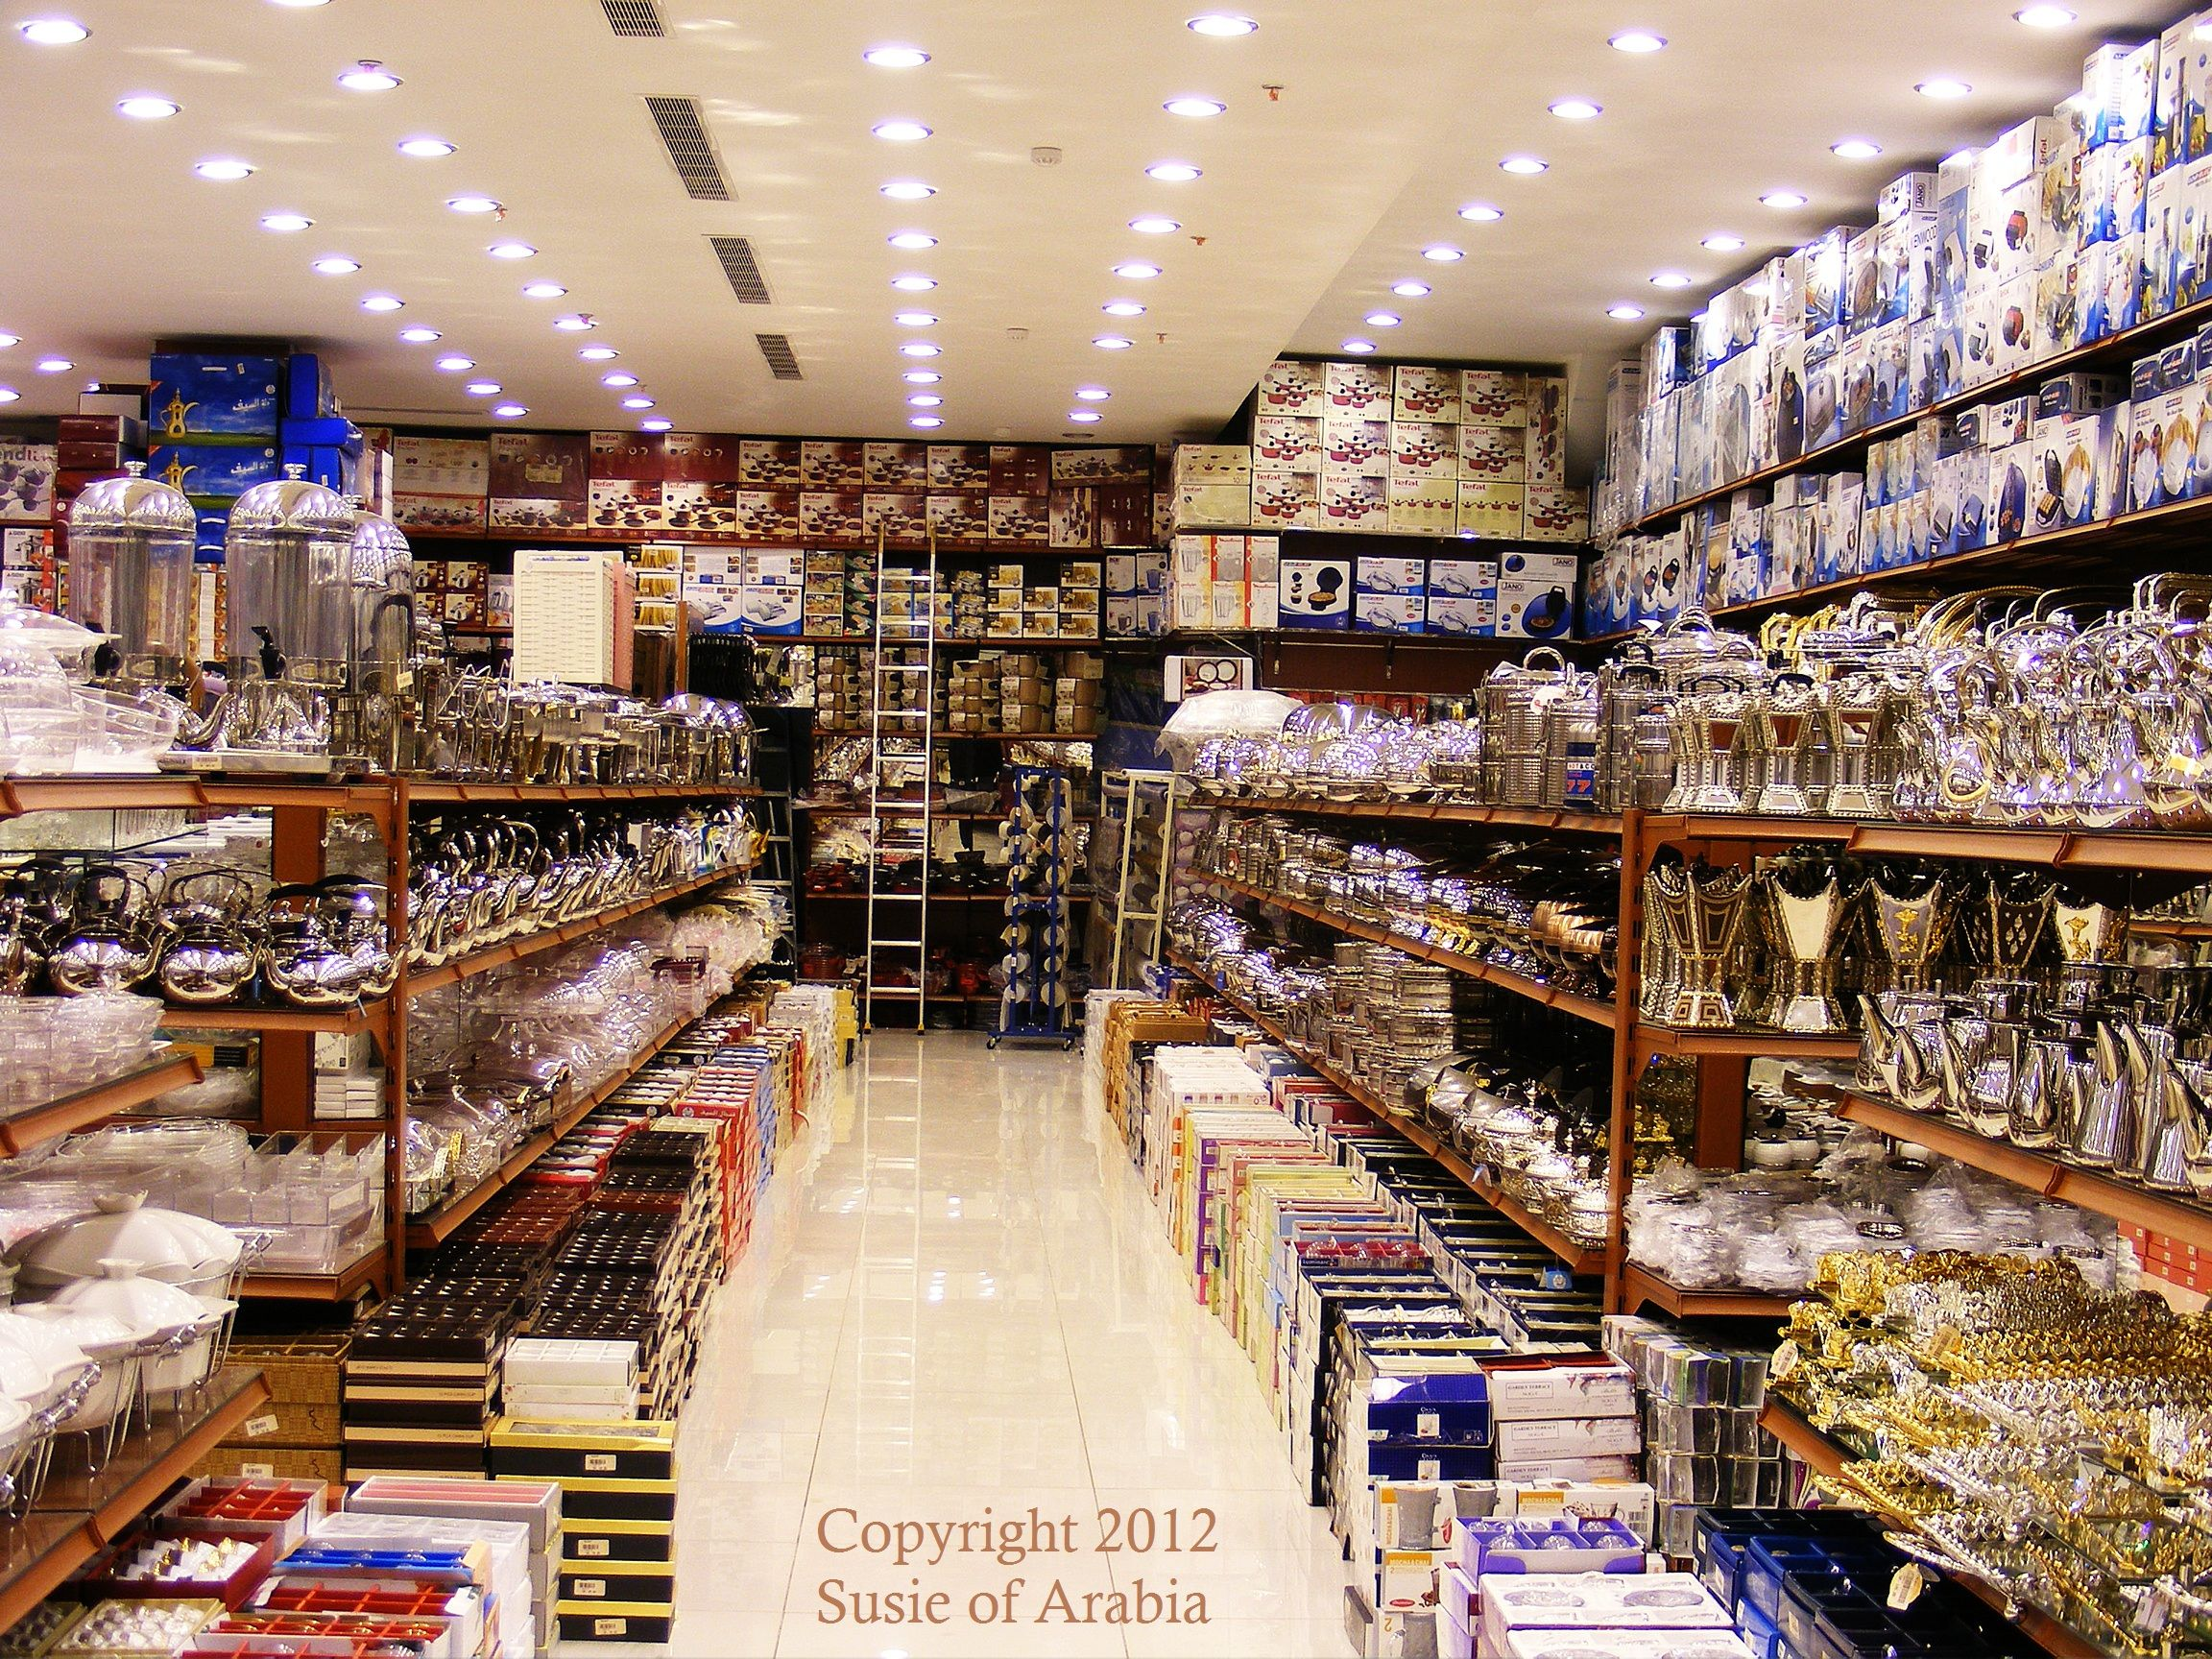 There Are Many Home Decor Shops Like This One In Jeddah With A Great Selection Of Products For